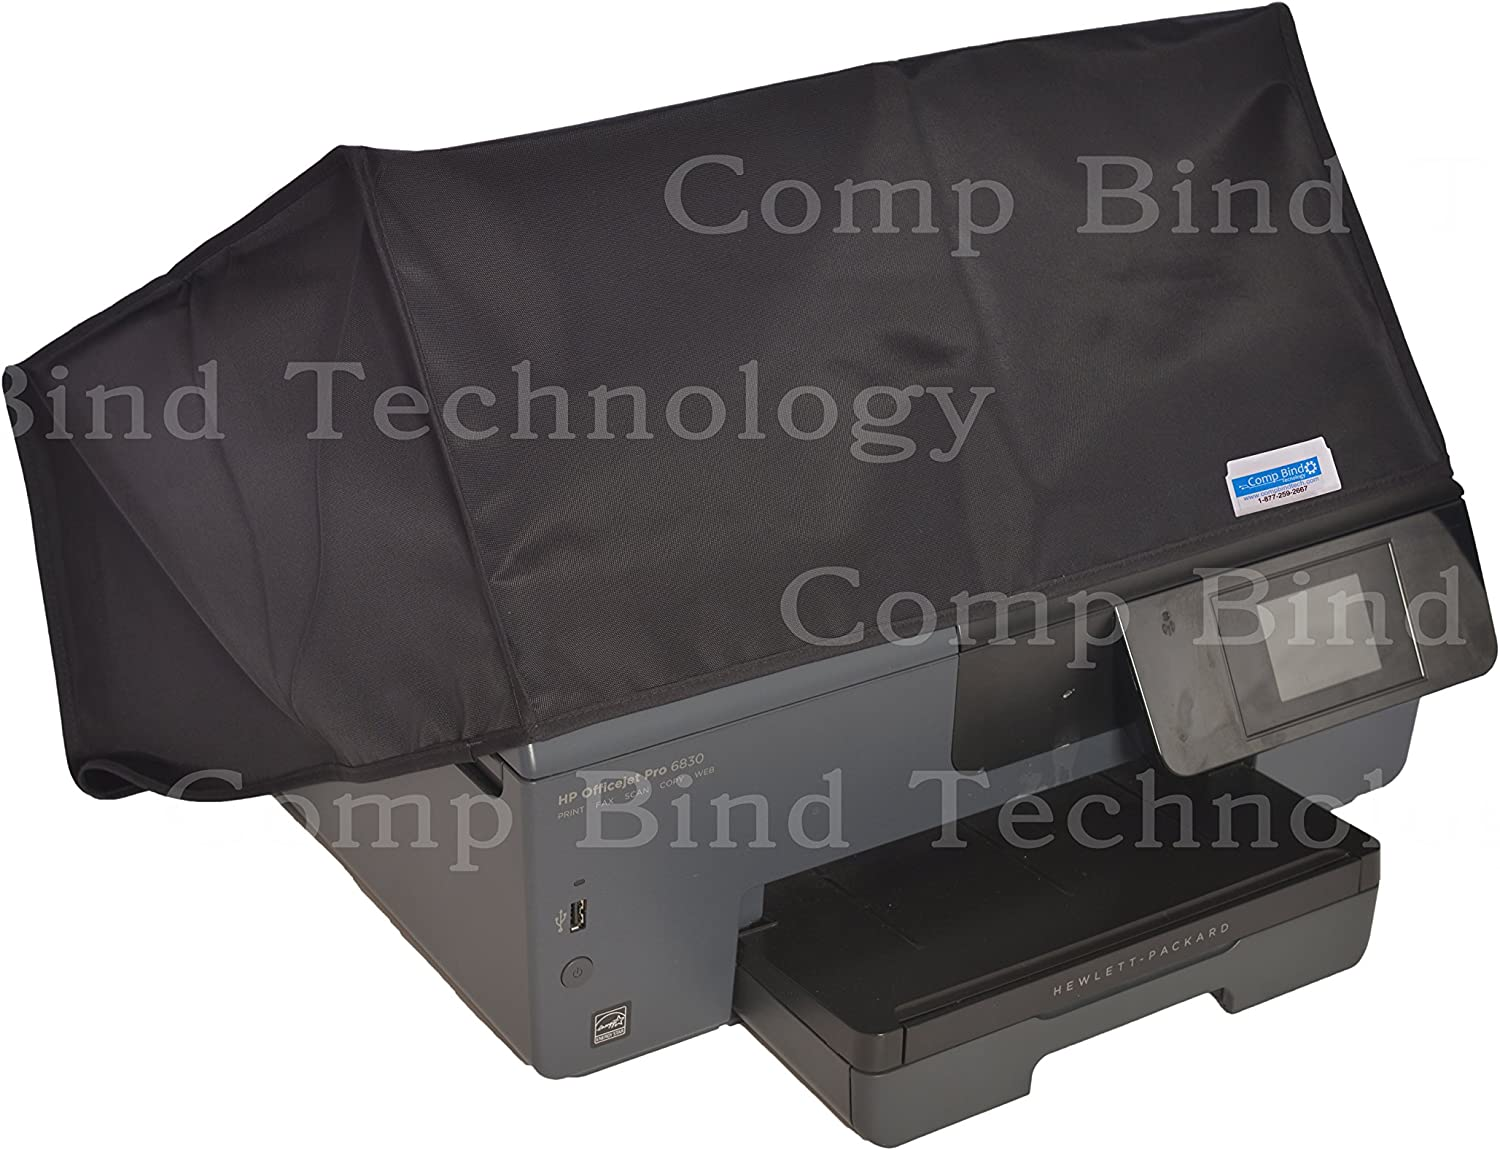 Comp Bind Technology Dust Cover for HP OfficeJet Pro 8710 Wireless Color Printer Black Nylon Anti-Static Dust Cover Dimensions 19.7W x 15.9D x 12.4H